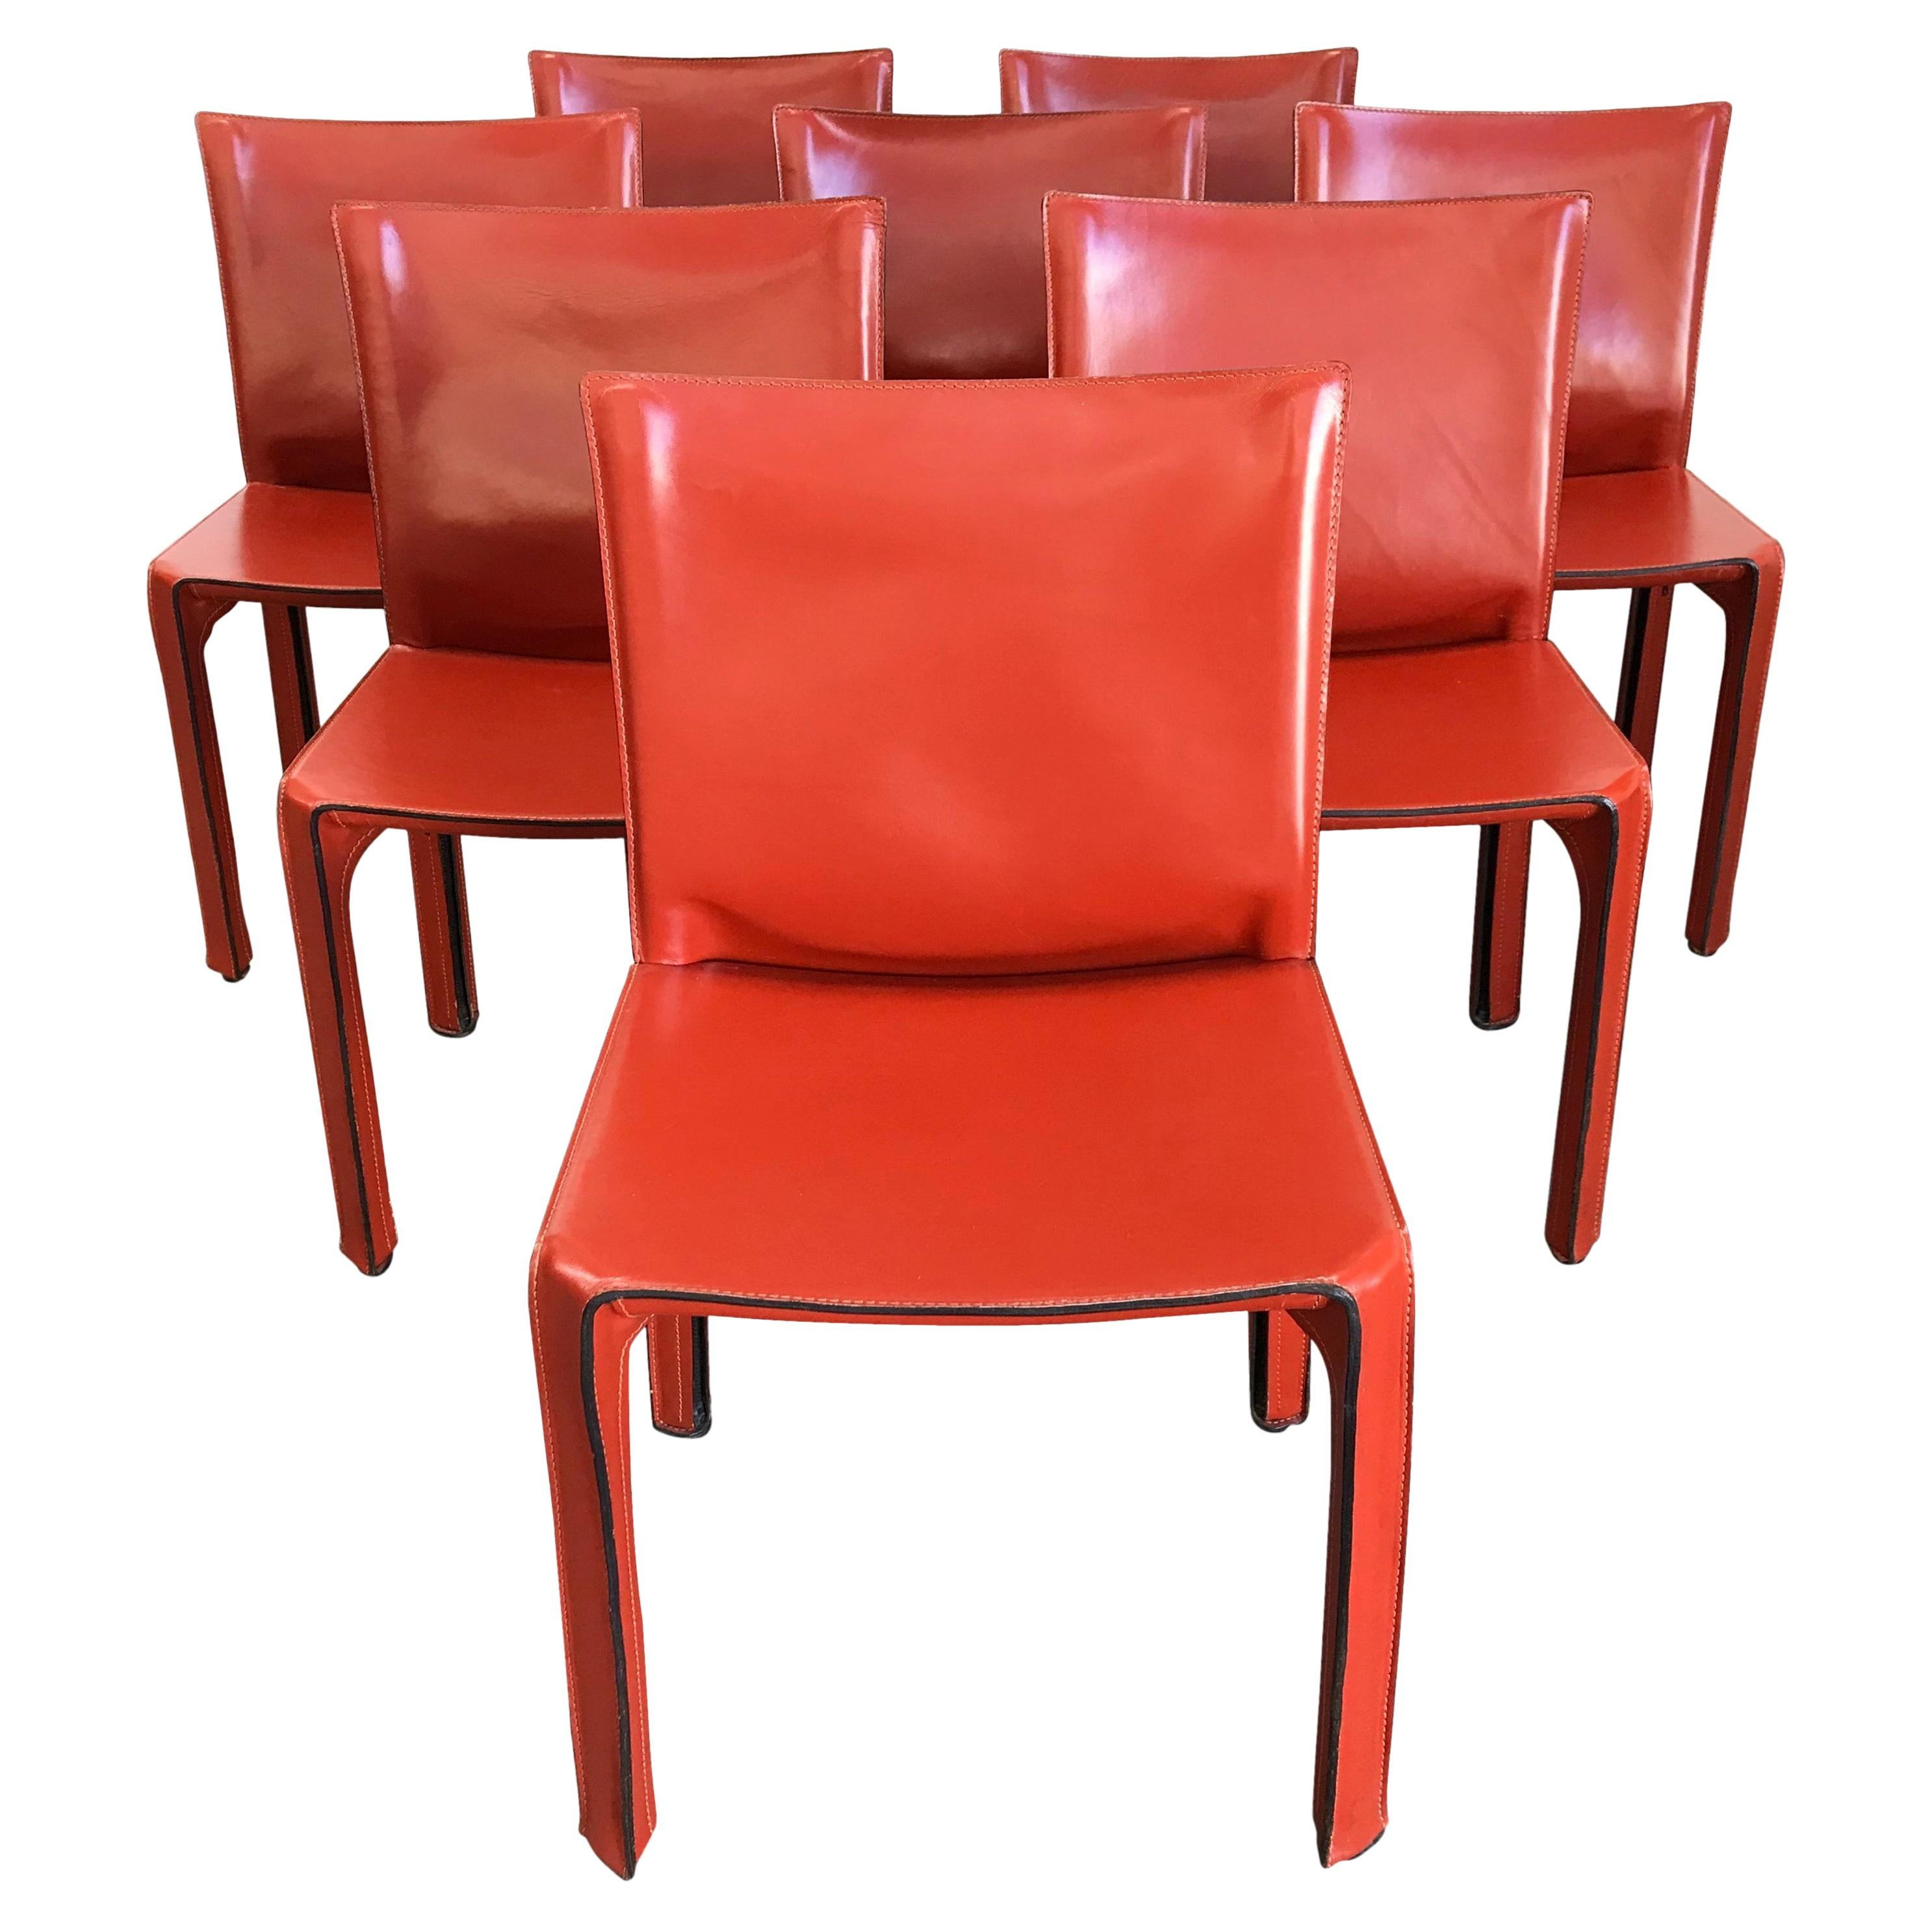 8 Mario Bellini CAB 412 Chairs in Russian Red Leather for Cassina